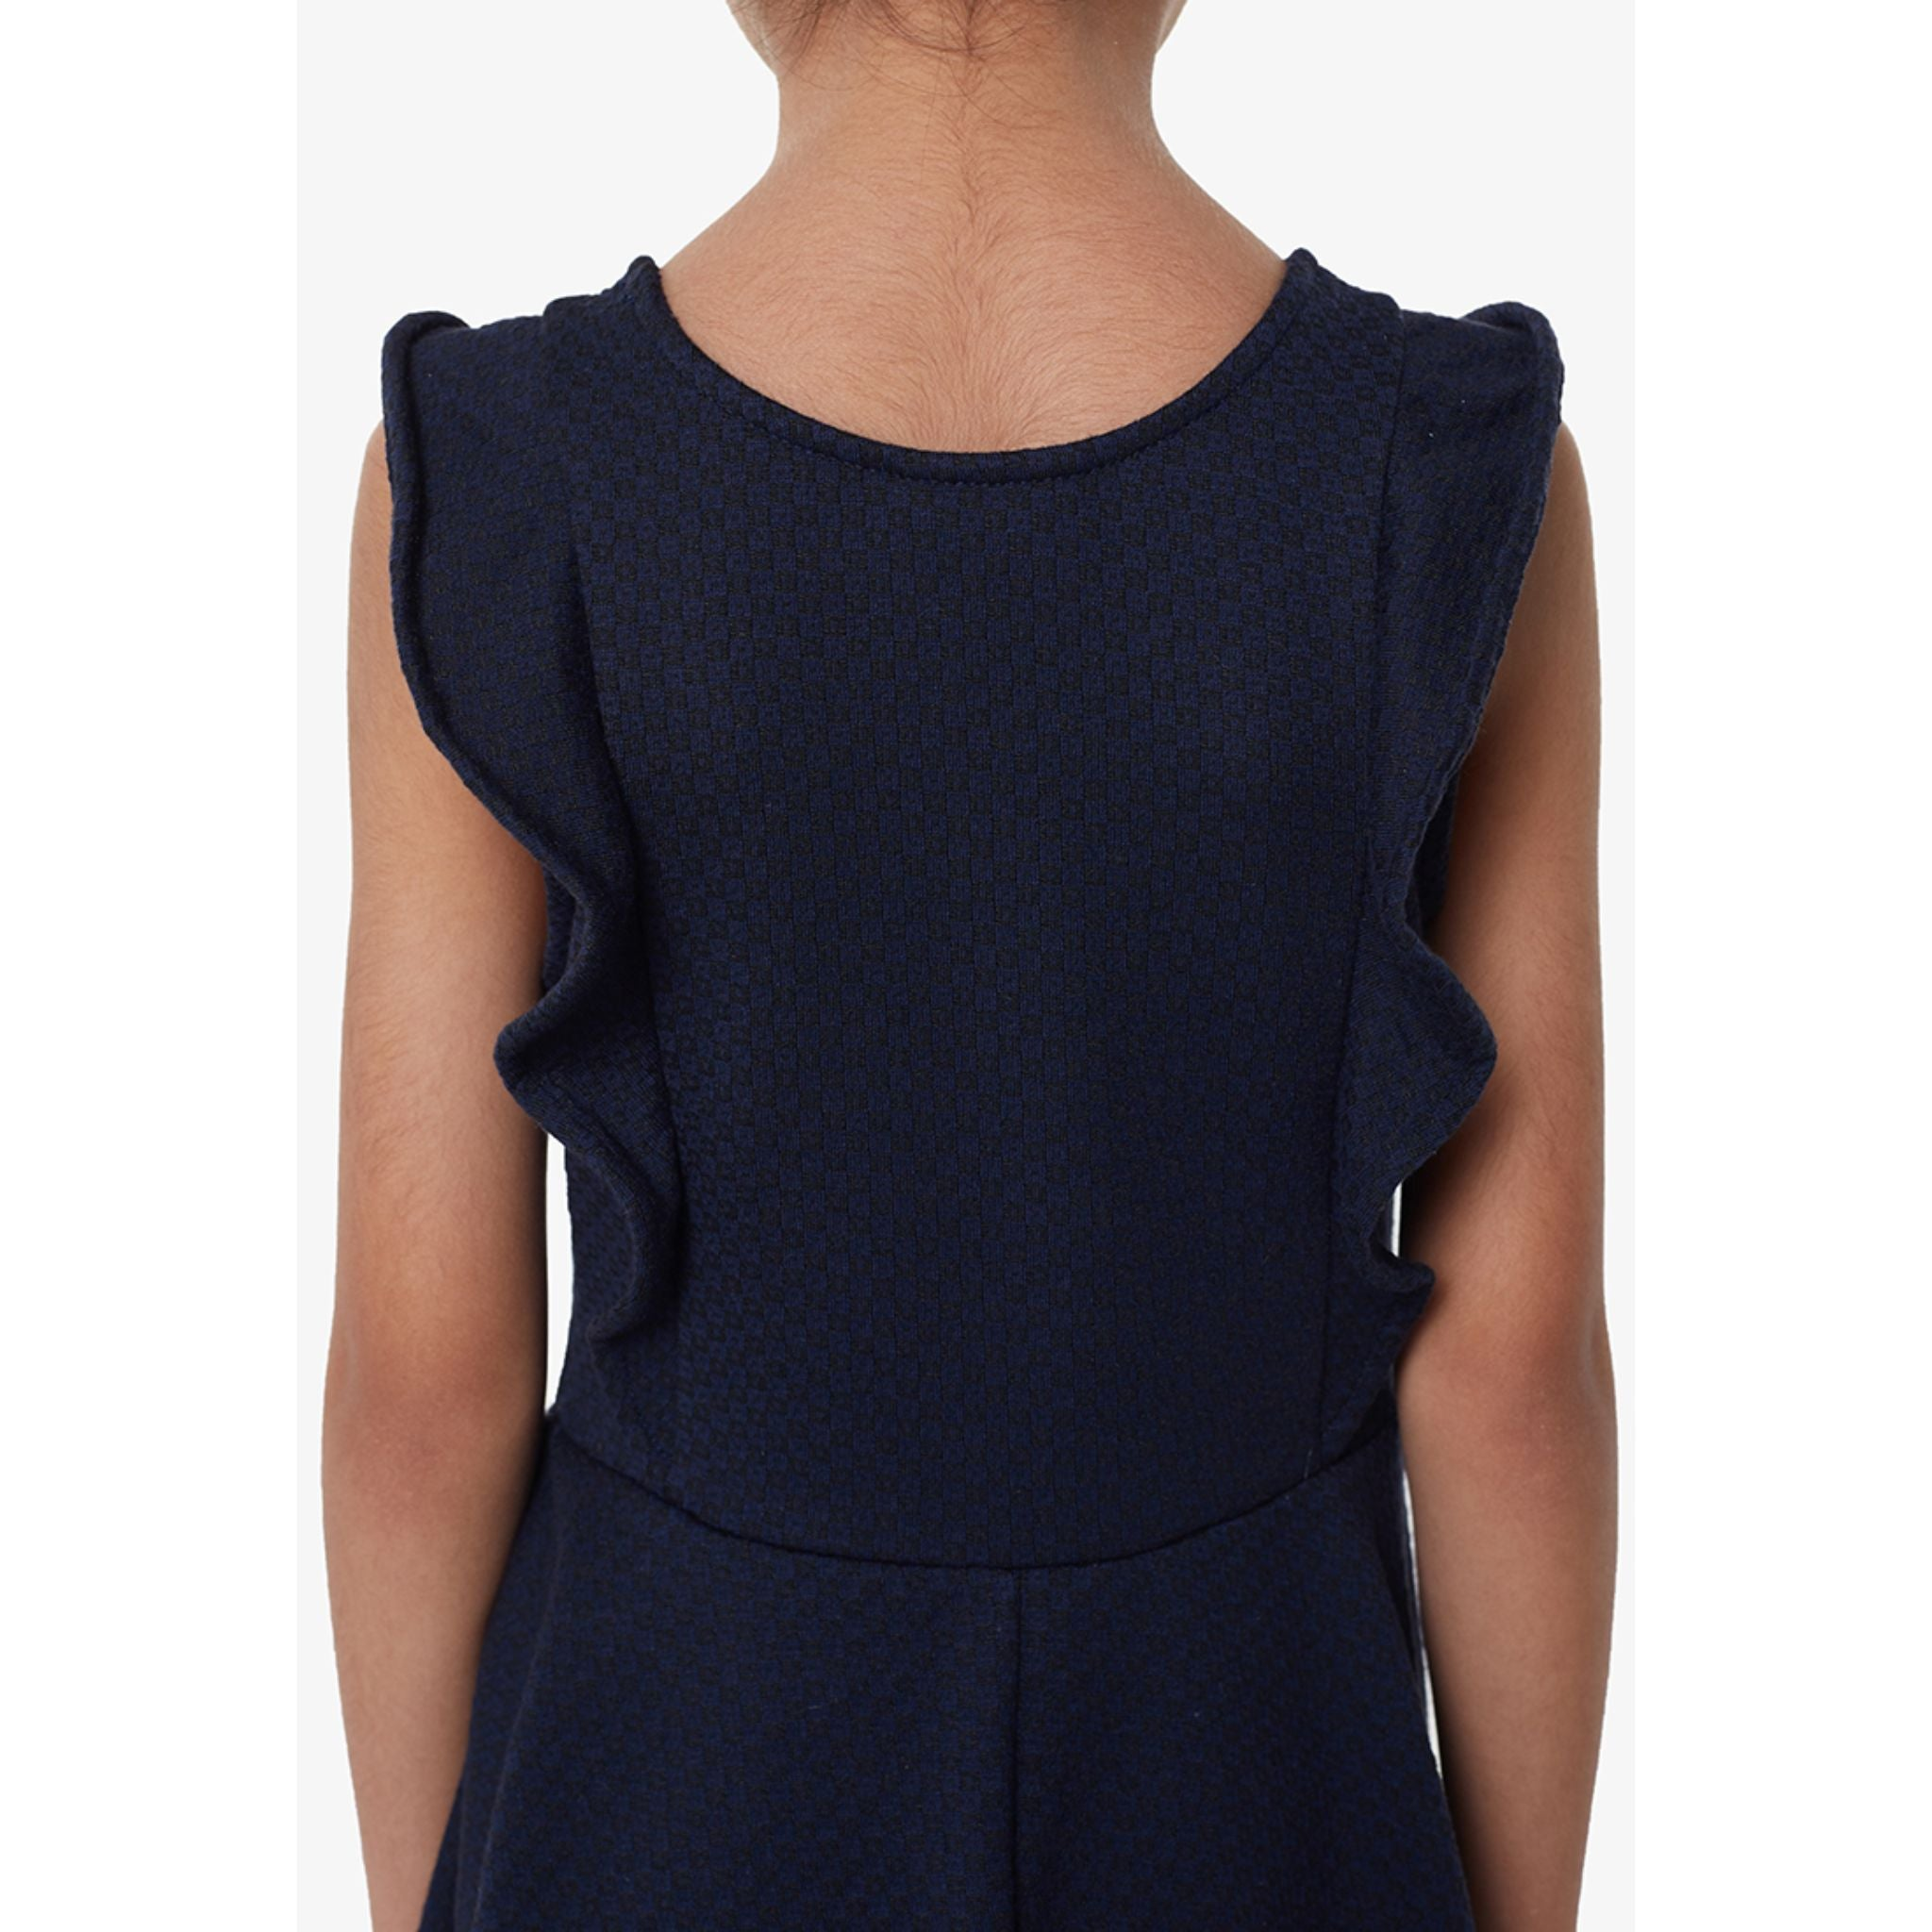 Gen Woo Jacquard Skater Dress - Navy